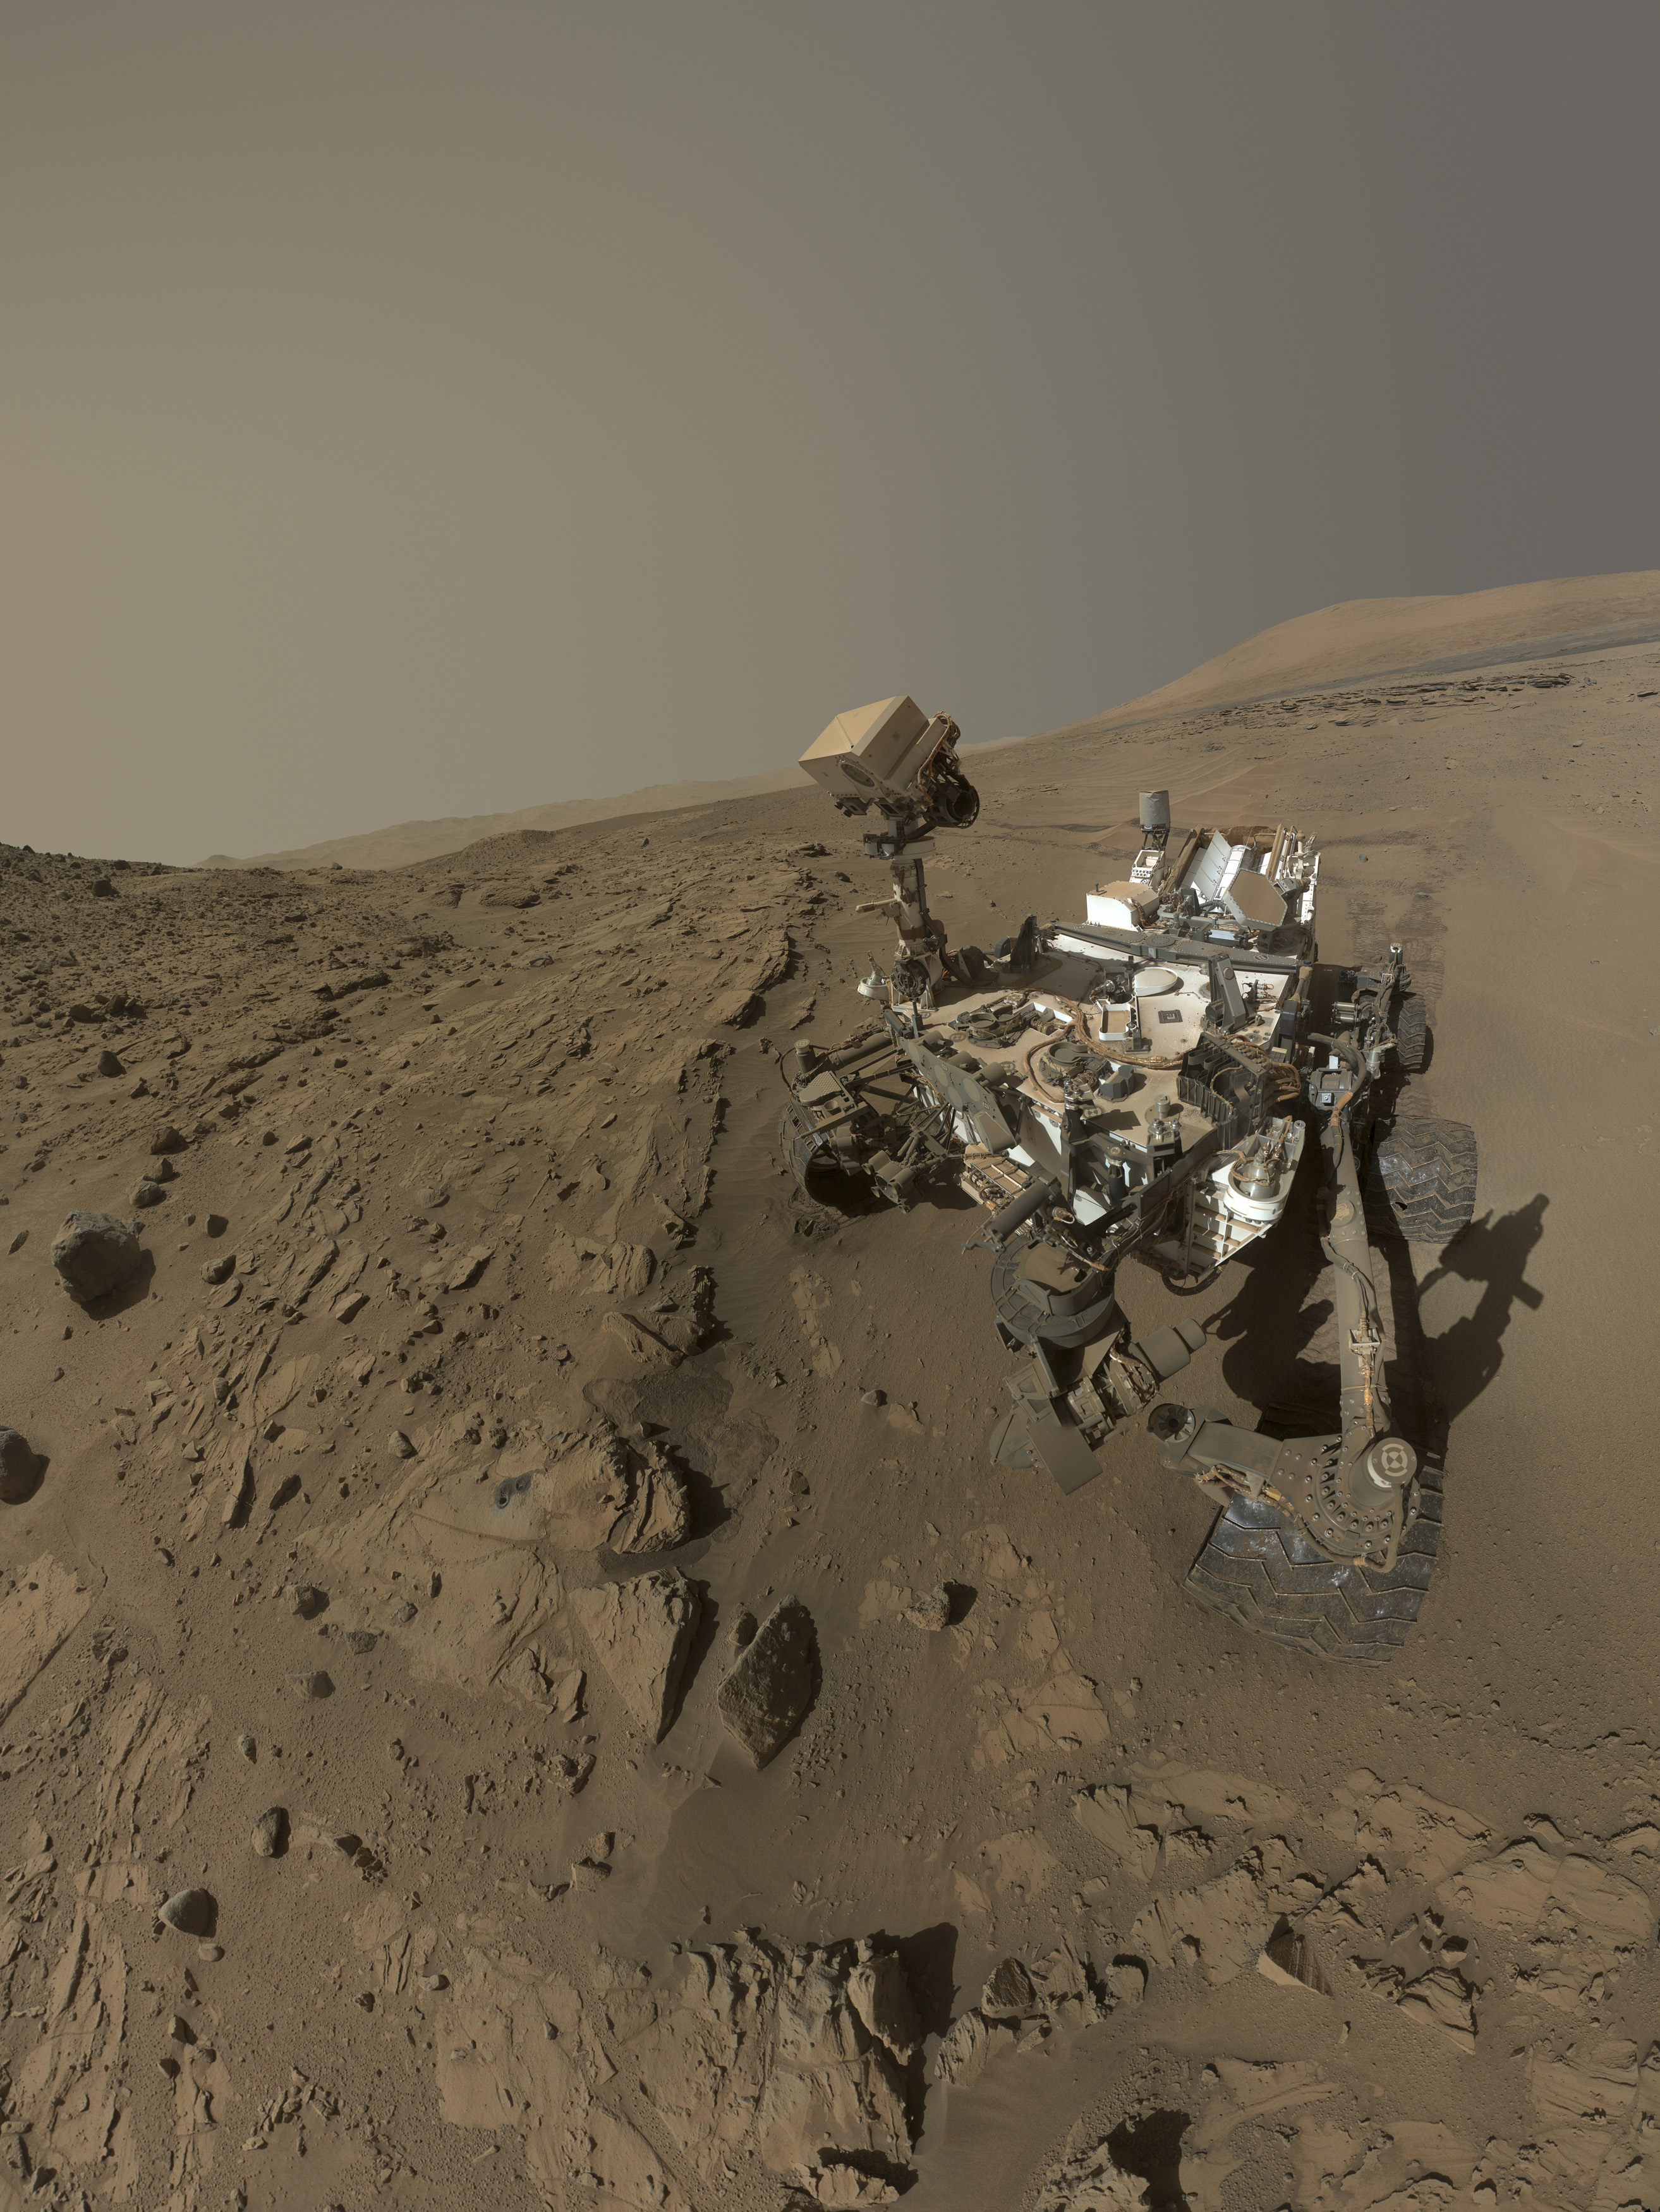 NASA's Mars Curiosity rover is pictured in this self-portrait where the rover drilled into a sandstone target called  Windjana  on Mars in this handout photo. June 2014.